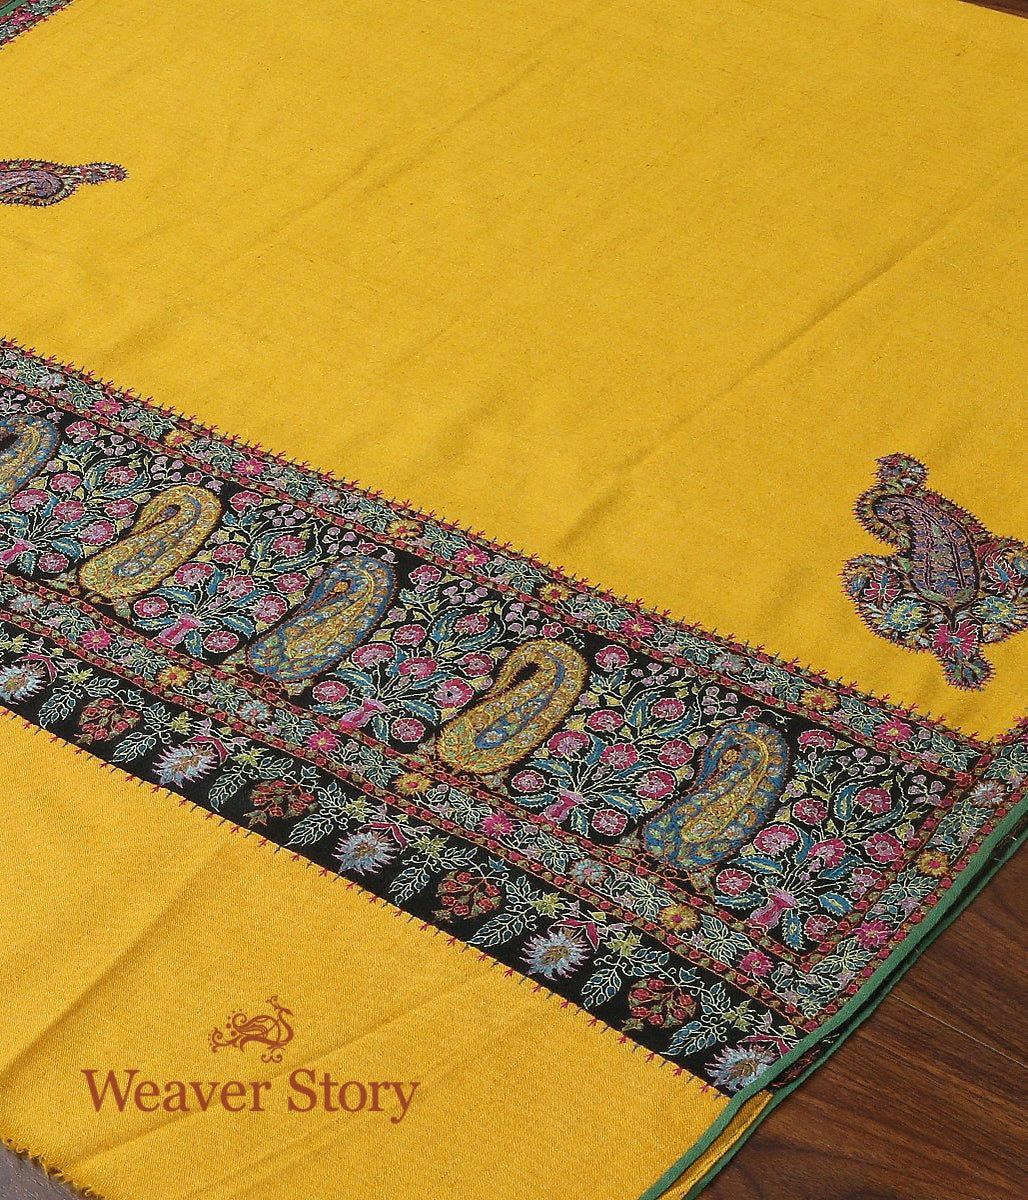 French Ochre Hand Spun and Hand Woven Pure Pashmina Shawl with Kalamkari Appliqued Borders